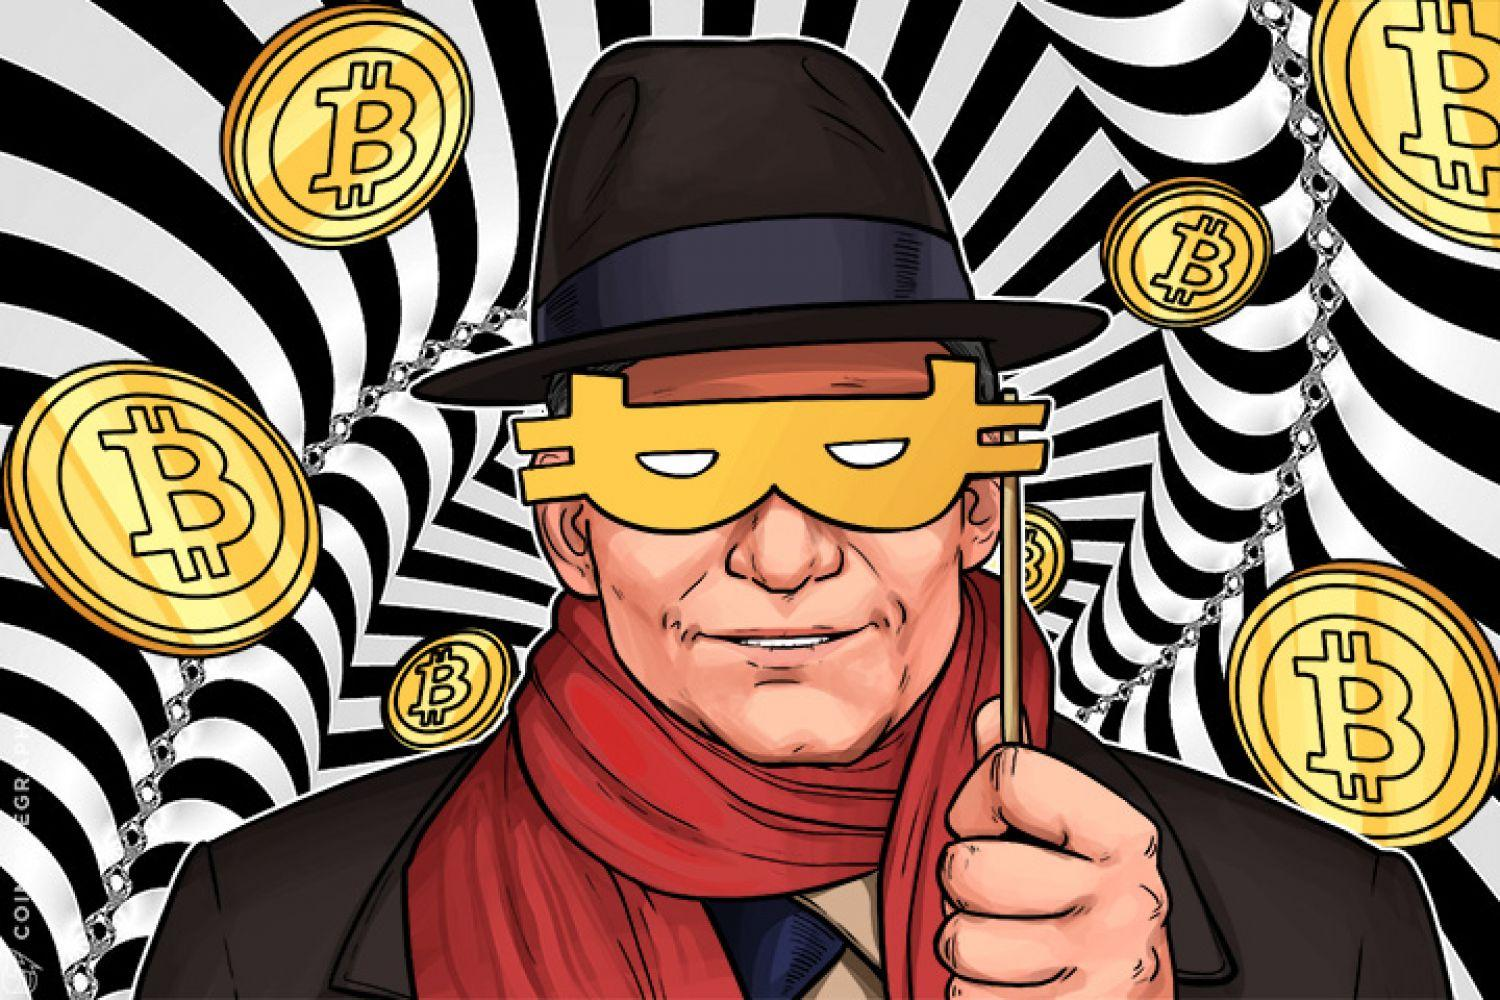 A stranger in a red scarf and bitcoins around